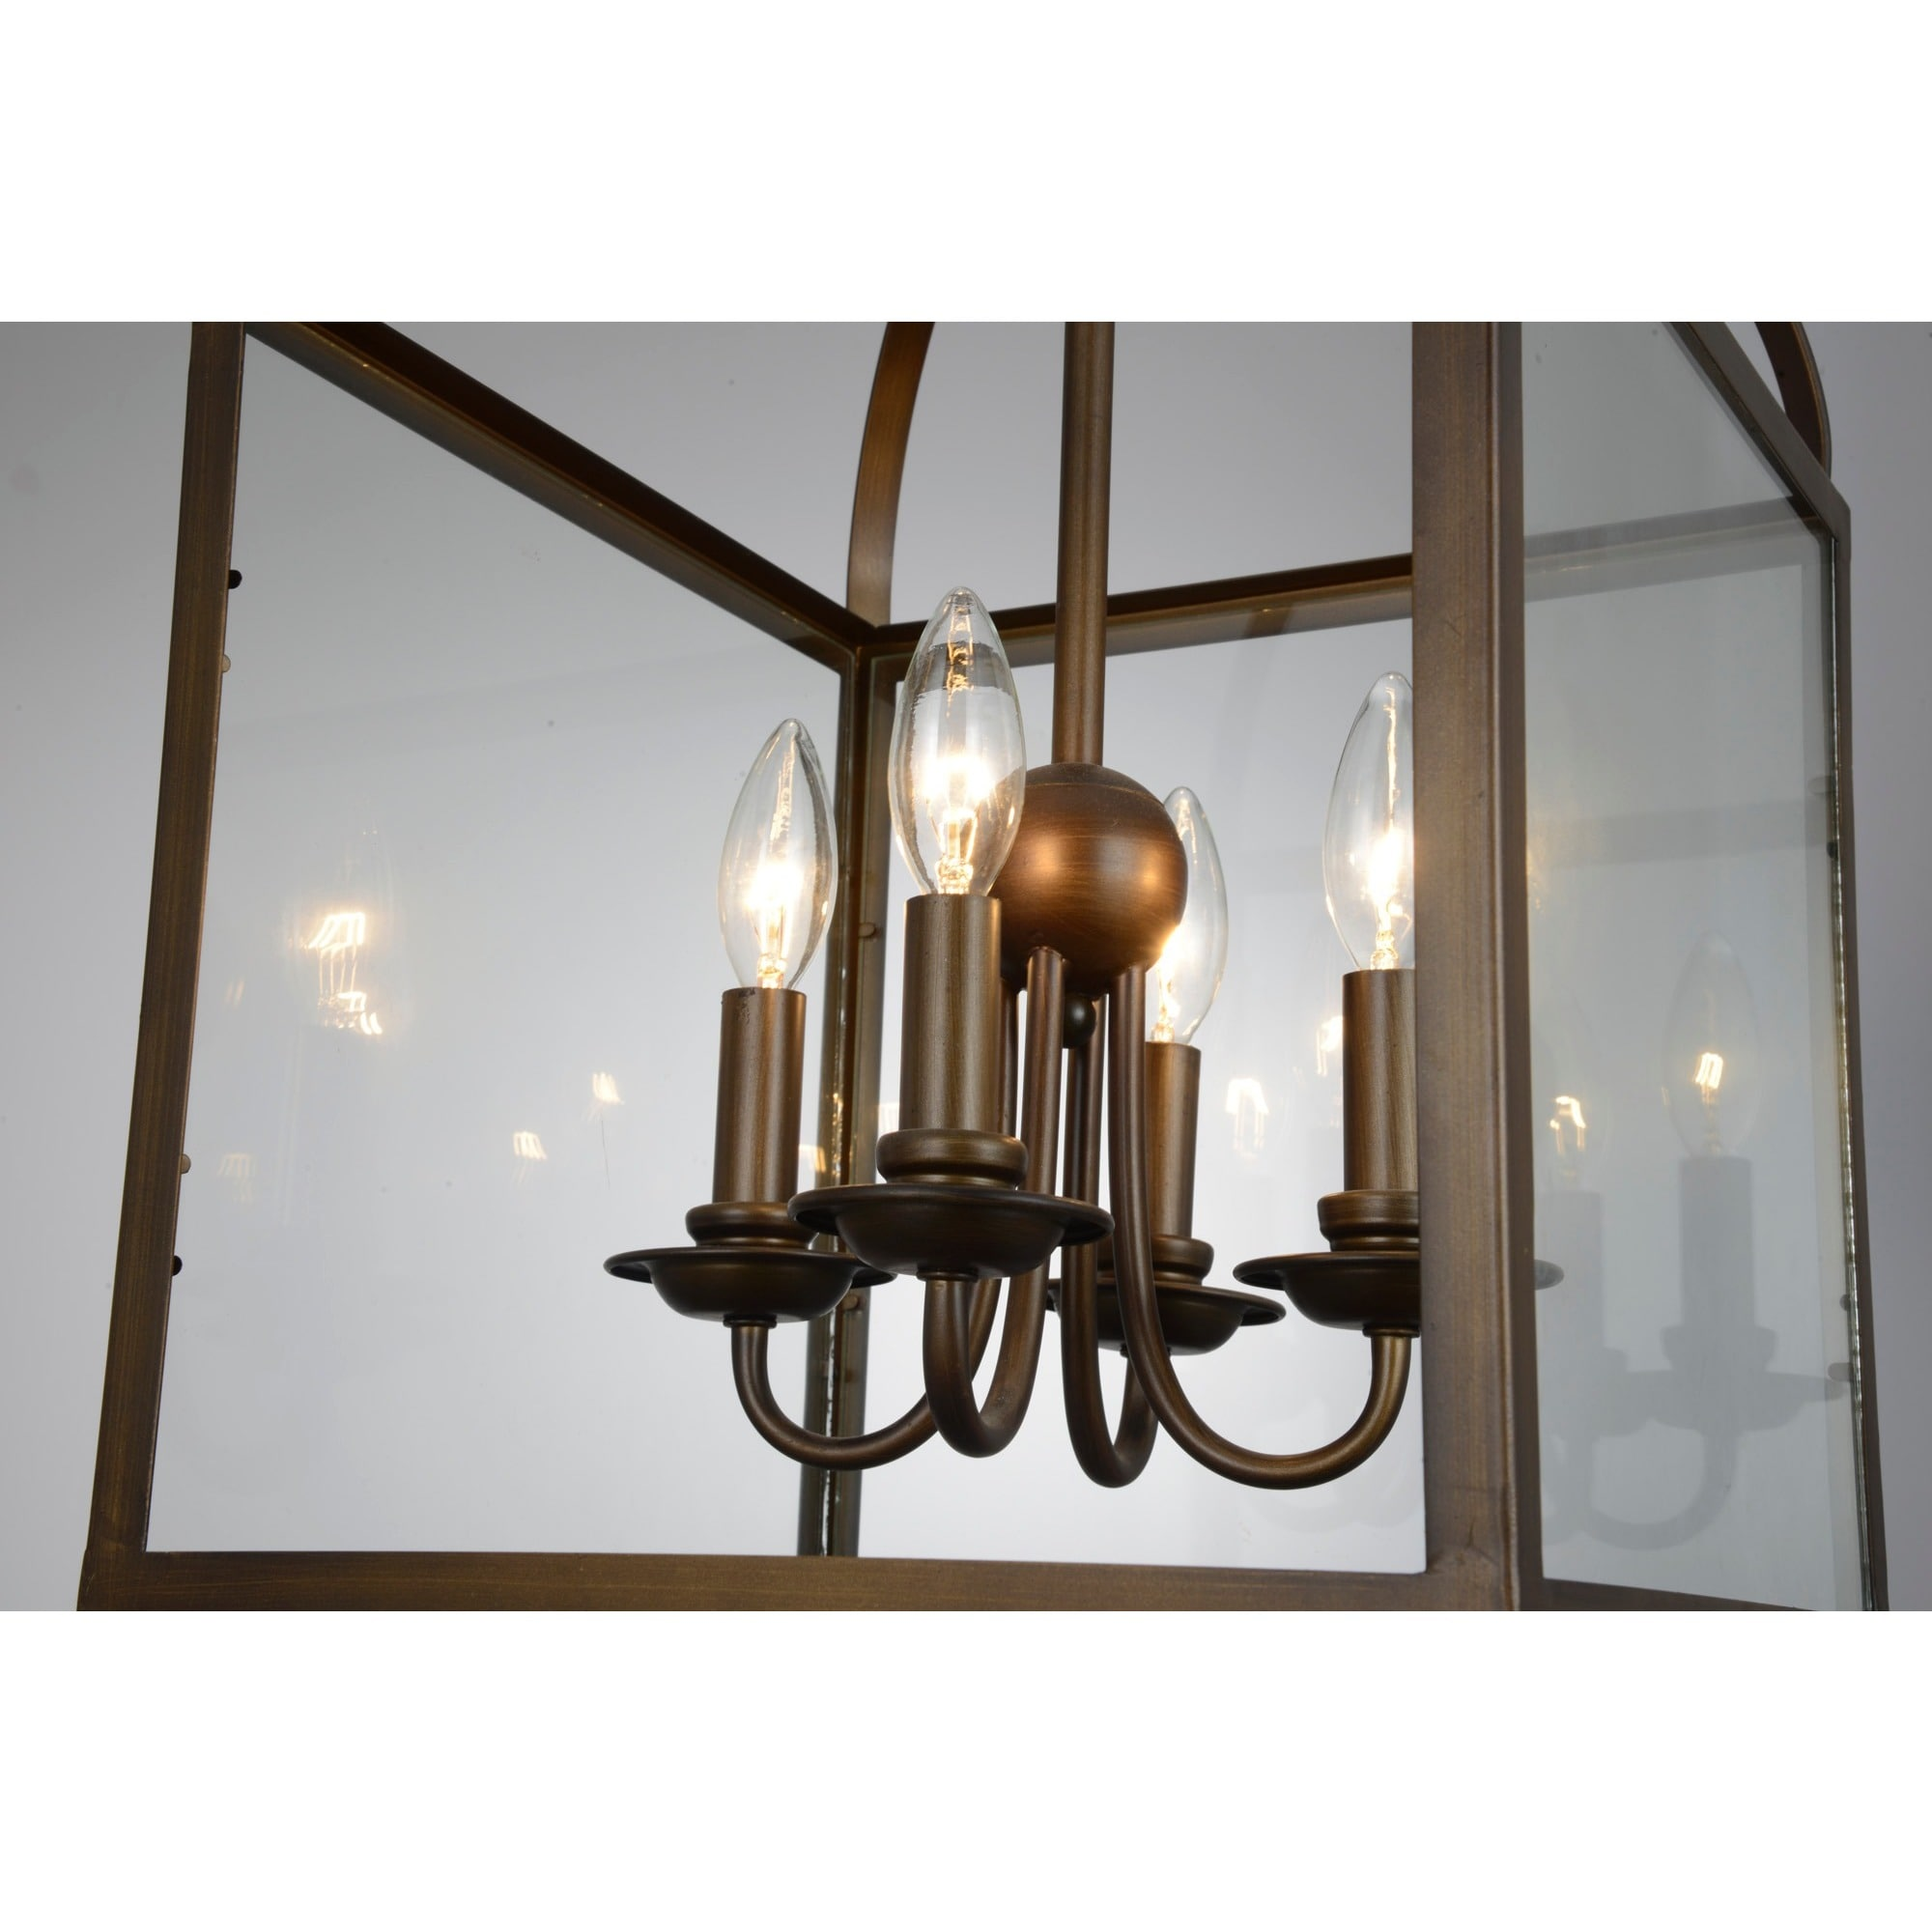 Angelo antique copper lantern chandelier free shipping today angelo antique copper lantern chandelier free shipping today overstock 14293671 arubaitofo Gallery